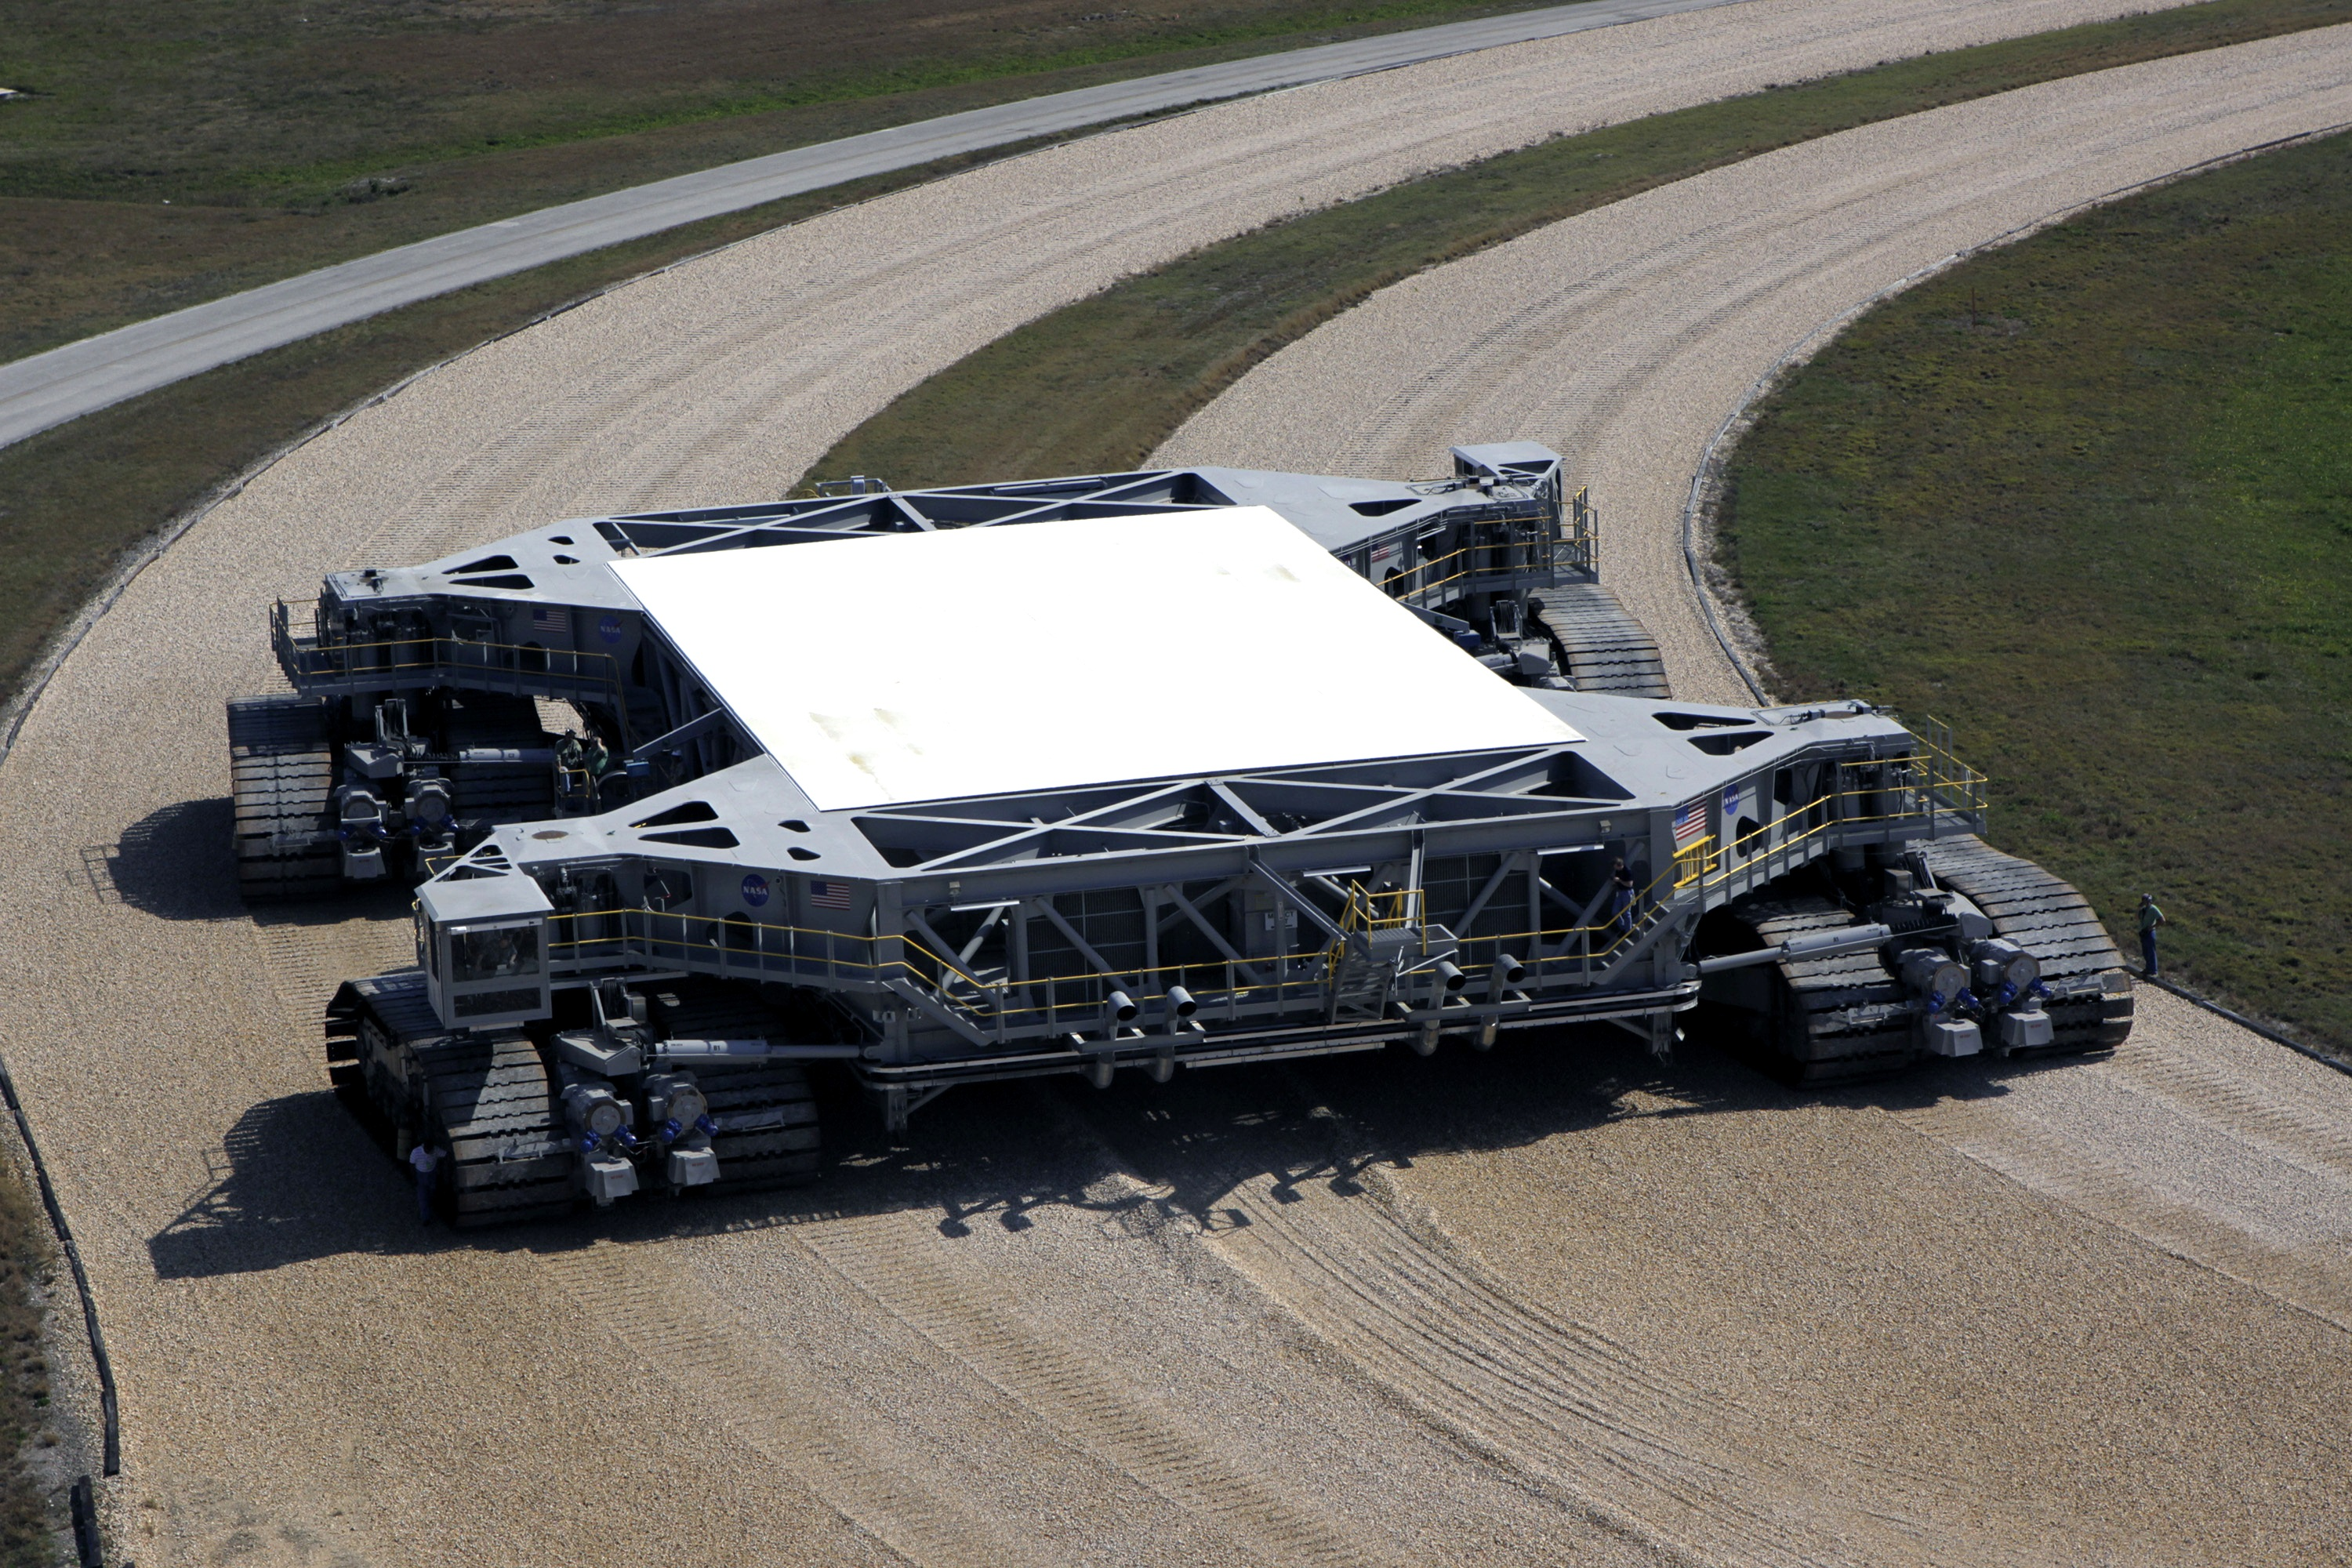 NASA - Crawler-Transporter Receives New Roller Bearing ...